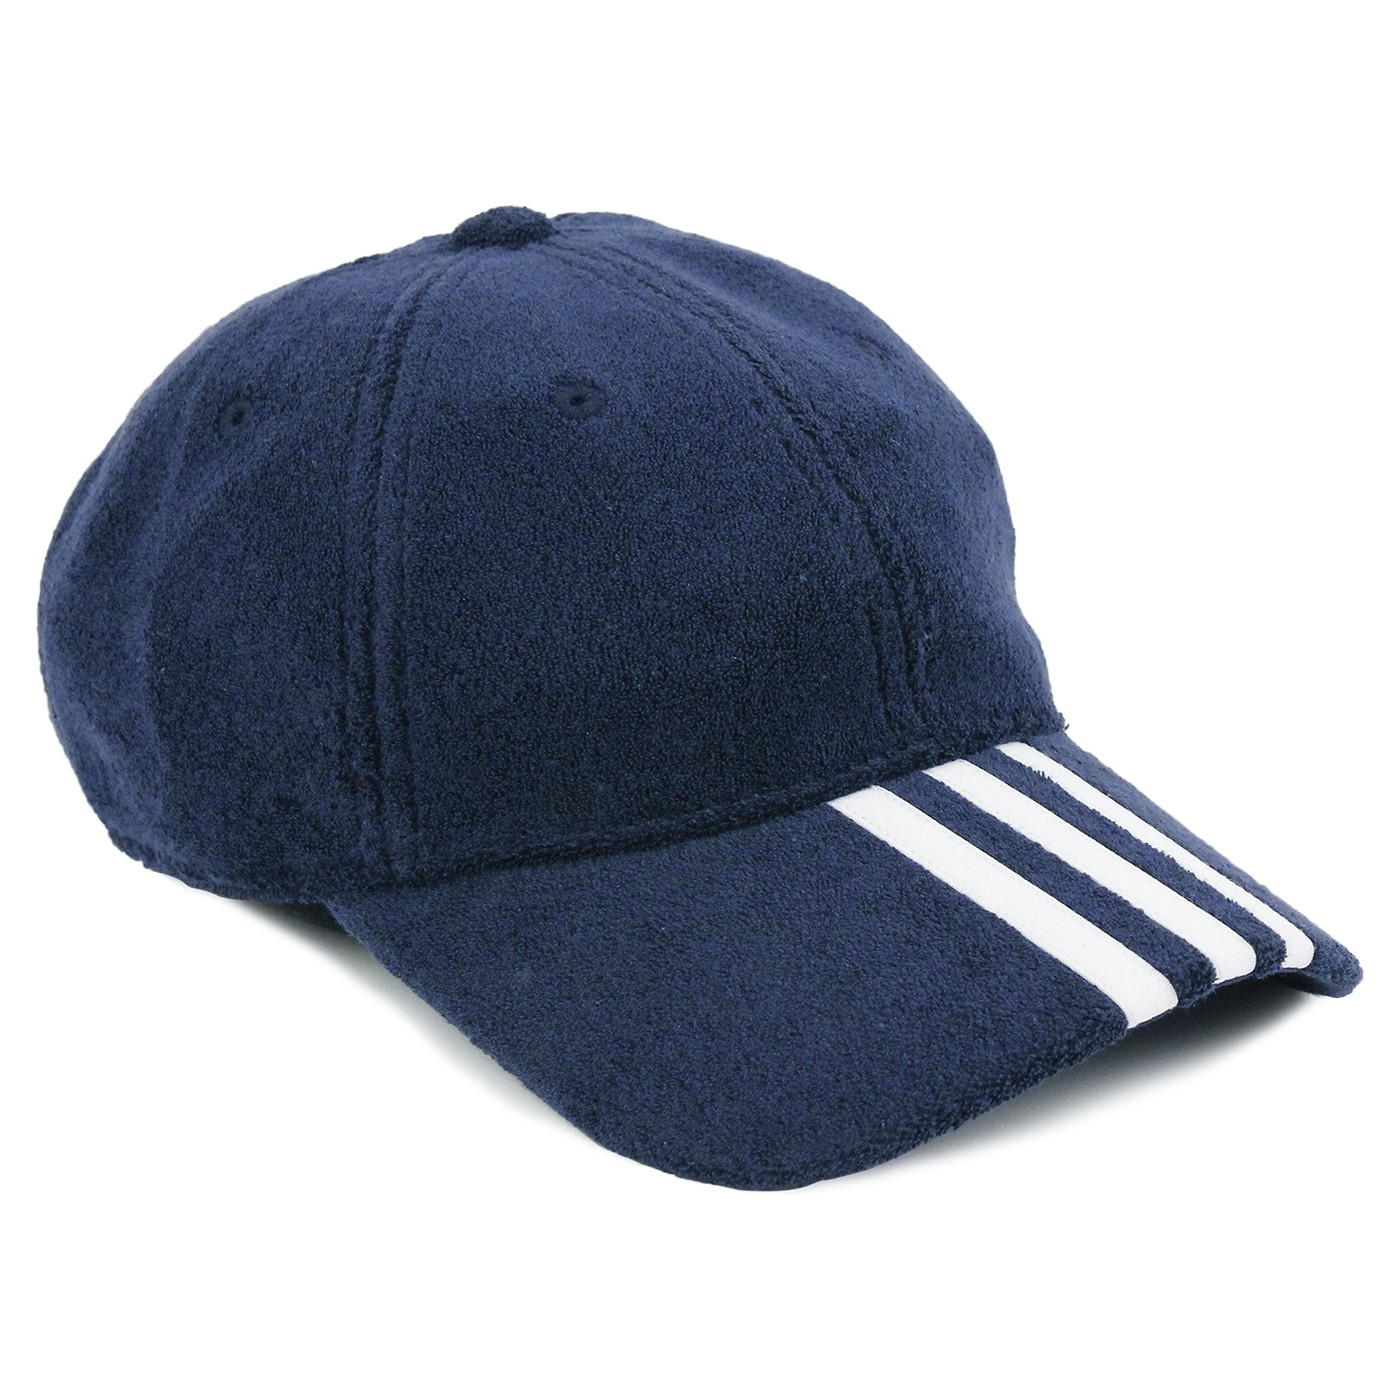 96c383c4730 Adidas ADIDAS X PALACE TOWEL CAP Size one size - Hats for Sale - Grailed